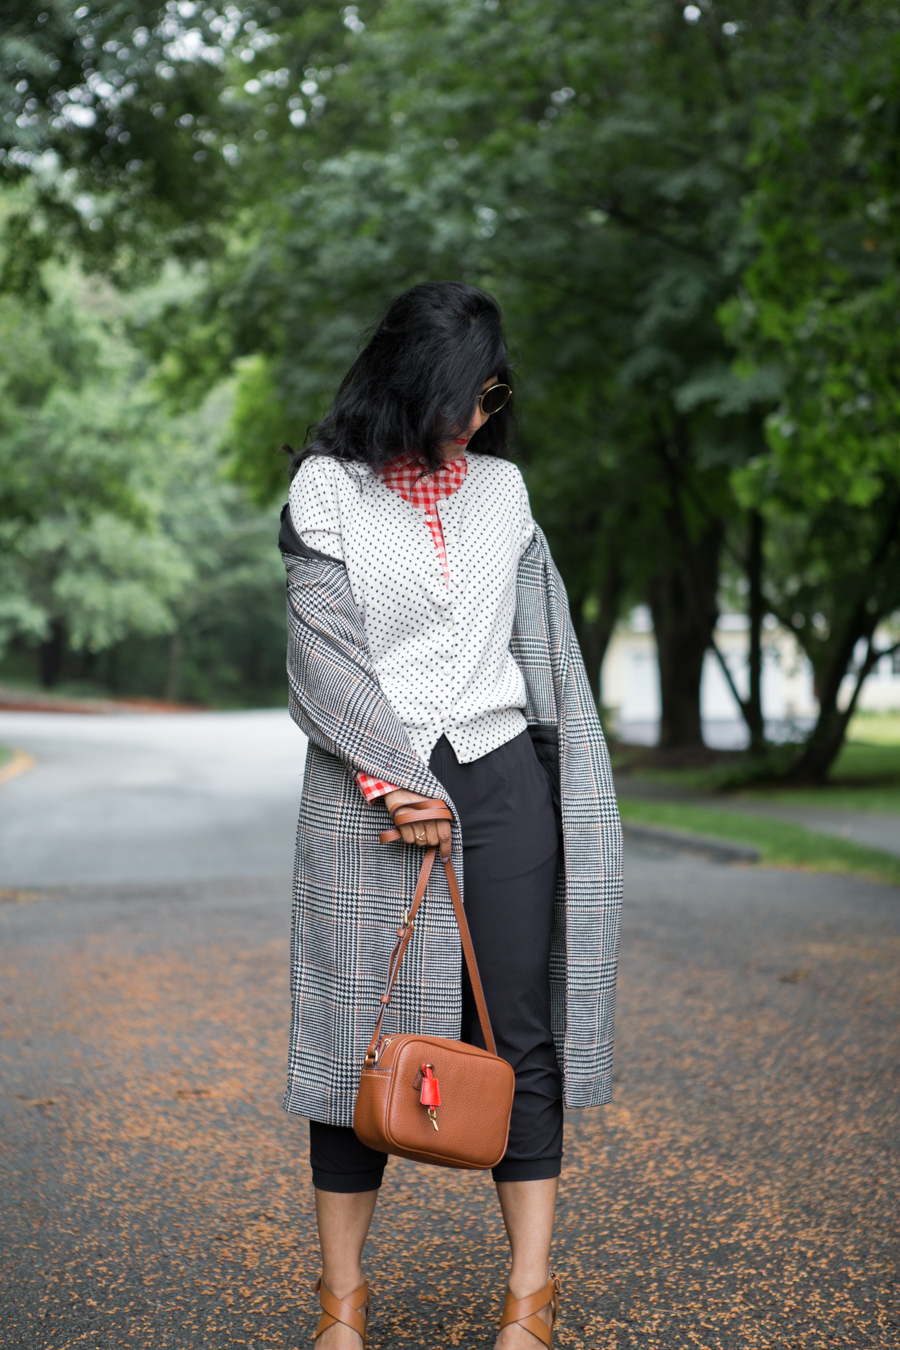 spring layers, how to mix prints, joggers, gingham, plaid, spring style, petite style, petite fashion, h&m, houndstooth, j.crew, affordable style, menswear-inspired, preppy